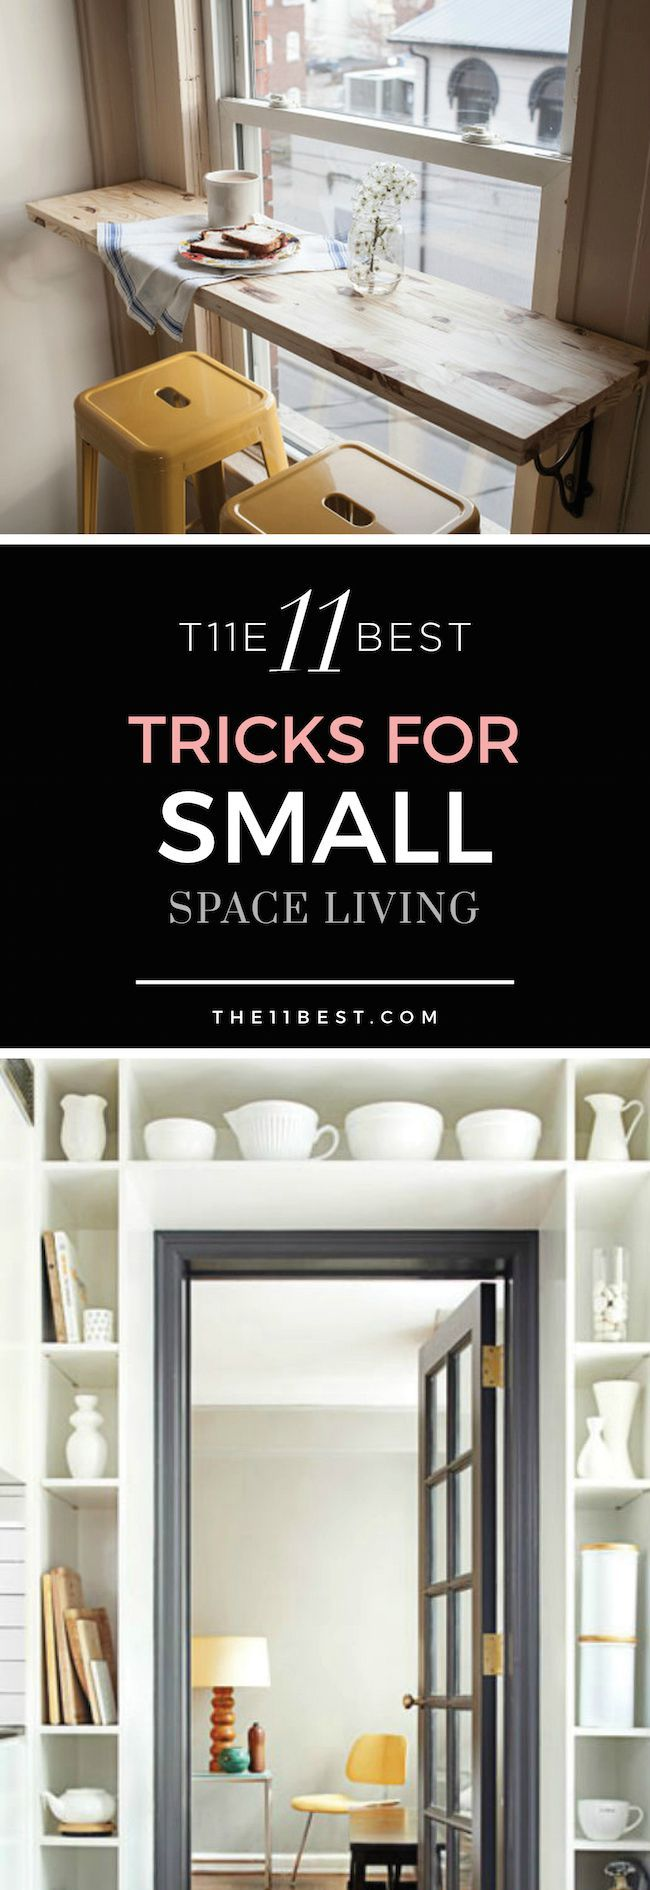 17 best ideas about small flats on pinterest small flat decor reflections apartments and - Pinterest storage ideas for small spaces ideas ...